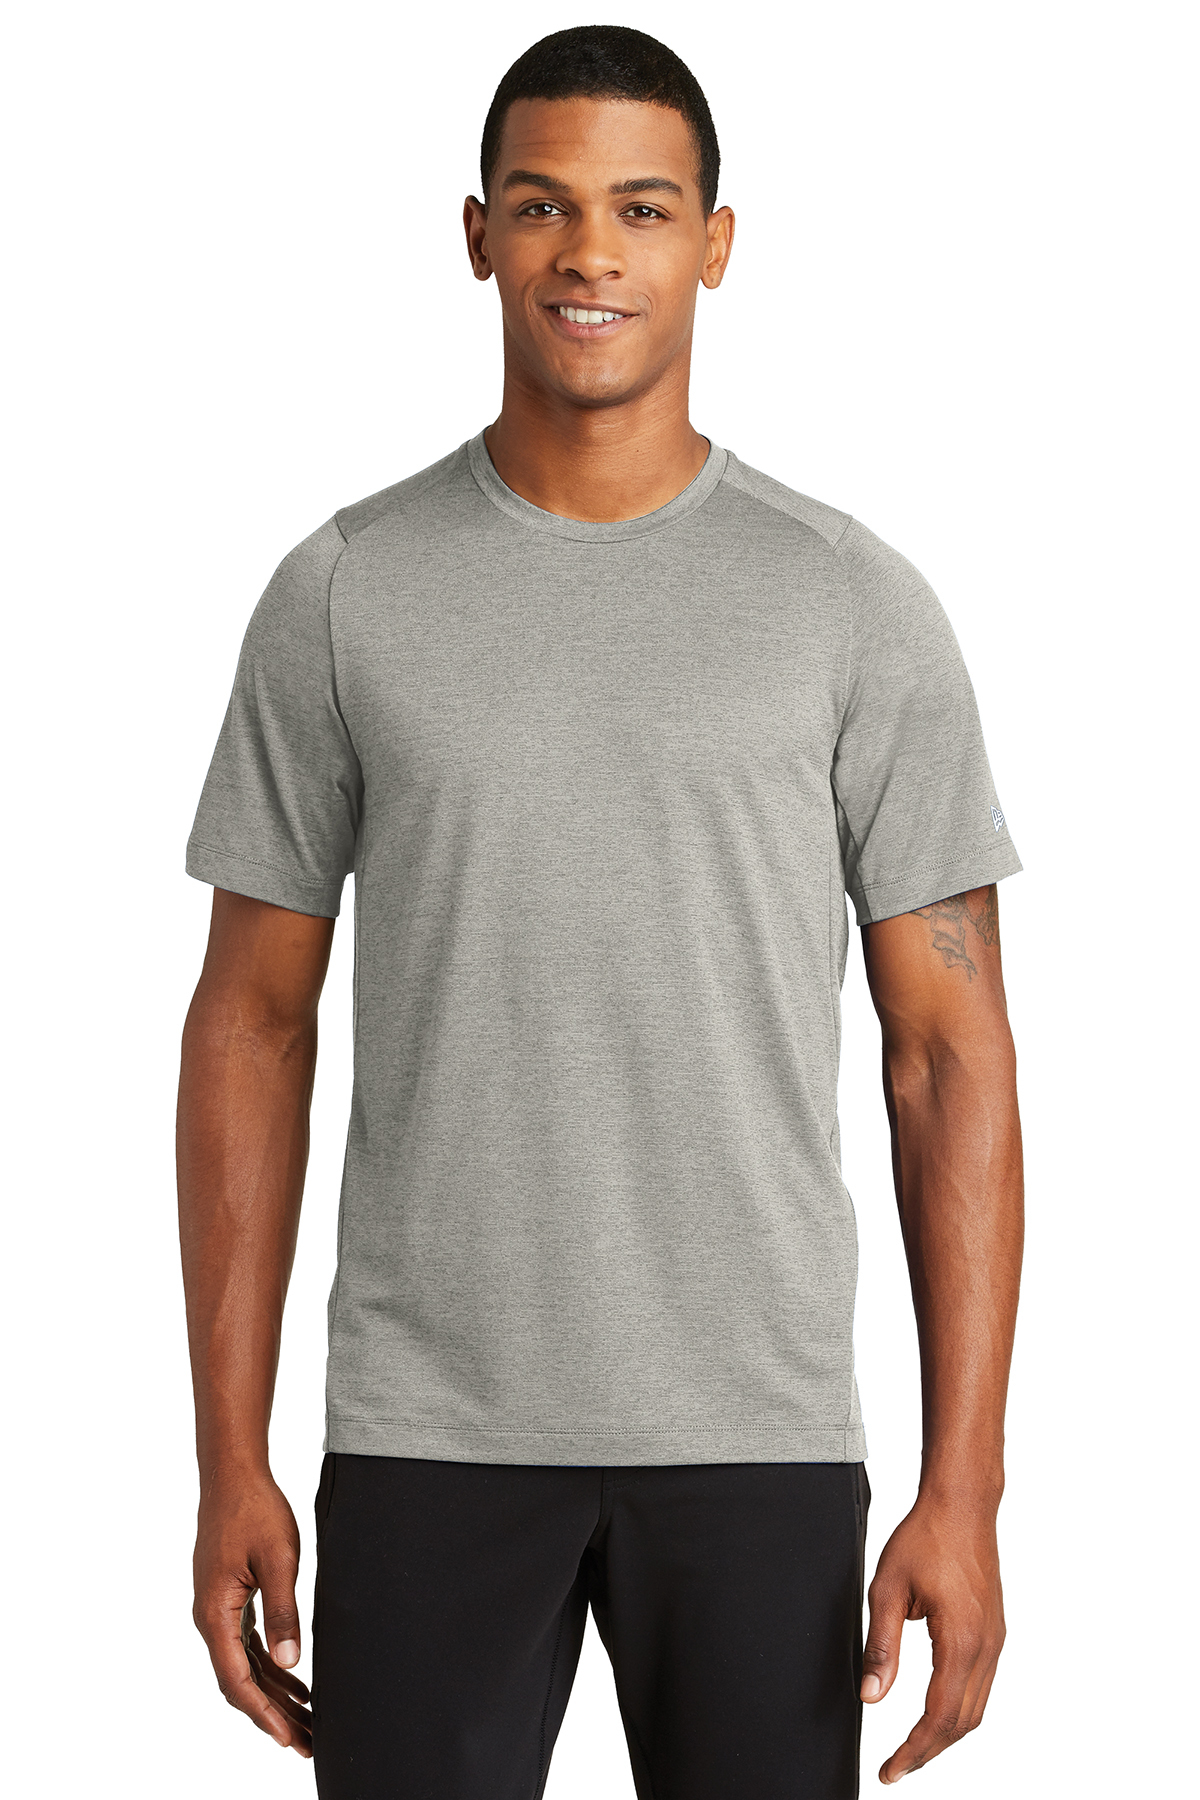 New Era NEA200 - Men's Series Performance Crew Tee